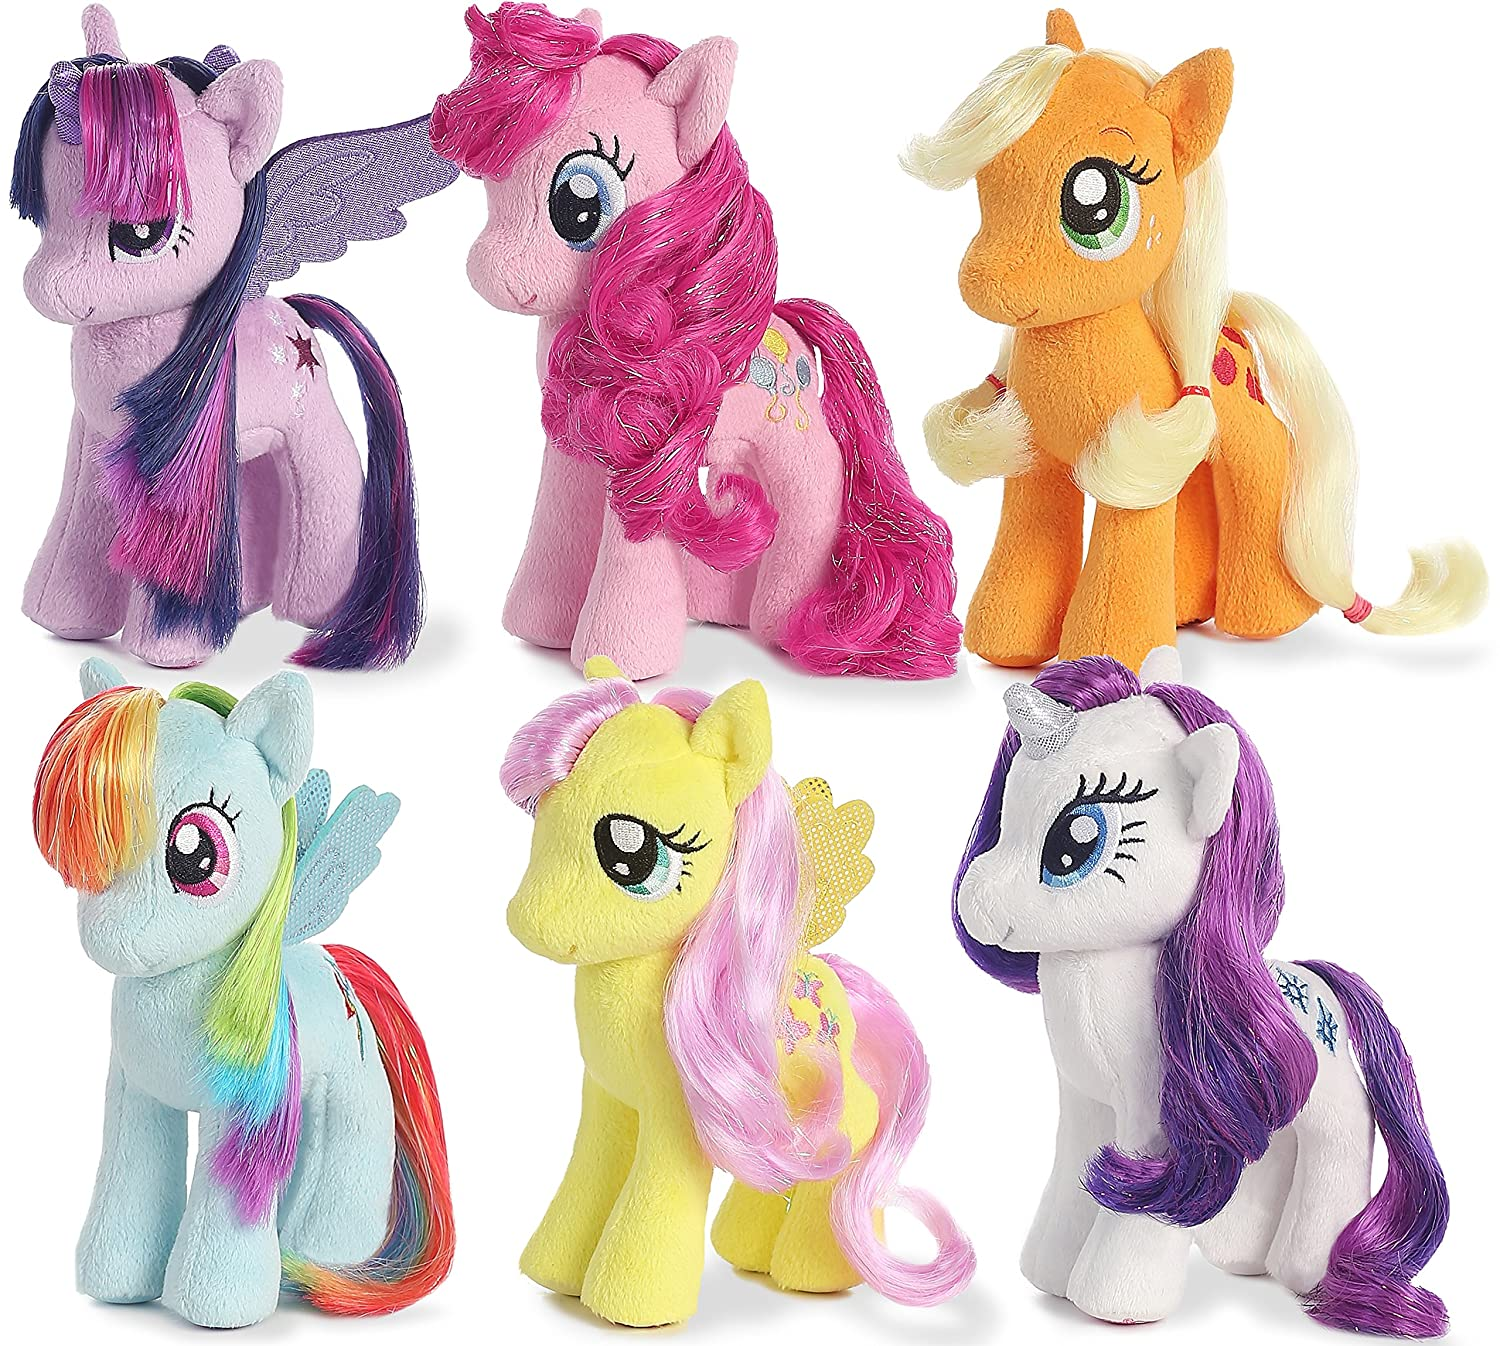 Best My Little Pony Toys And Dolls For Kids : Top best my little pony toys for kids ages to